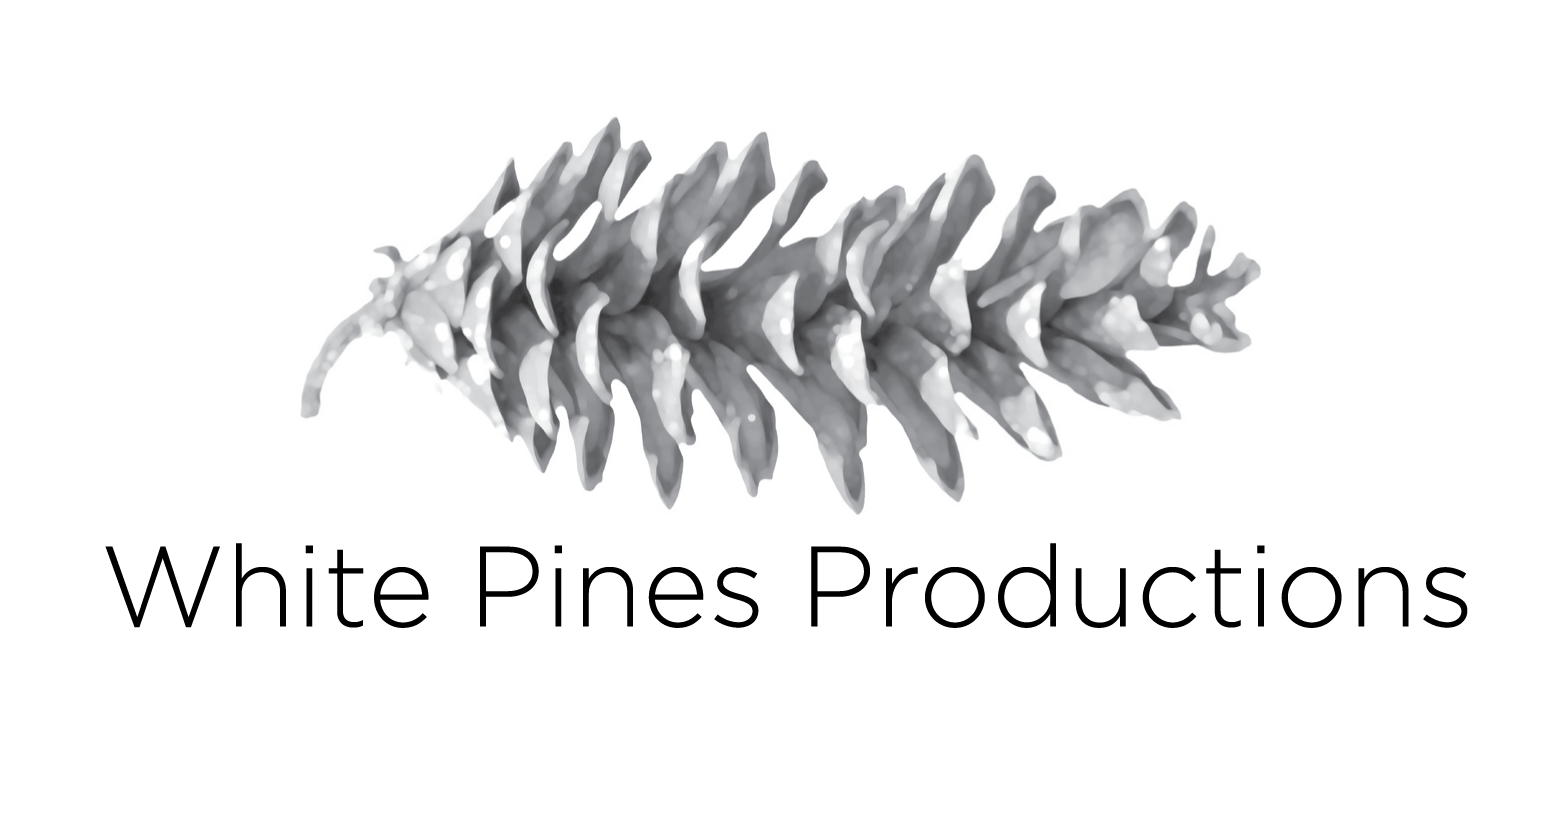 White Pines Productions